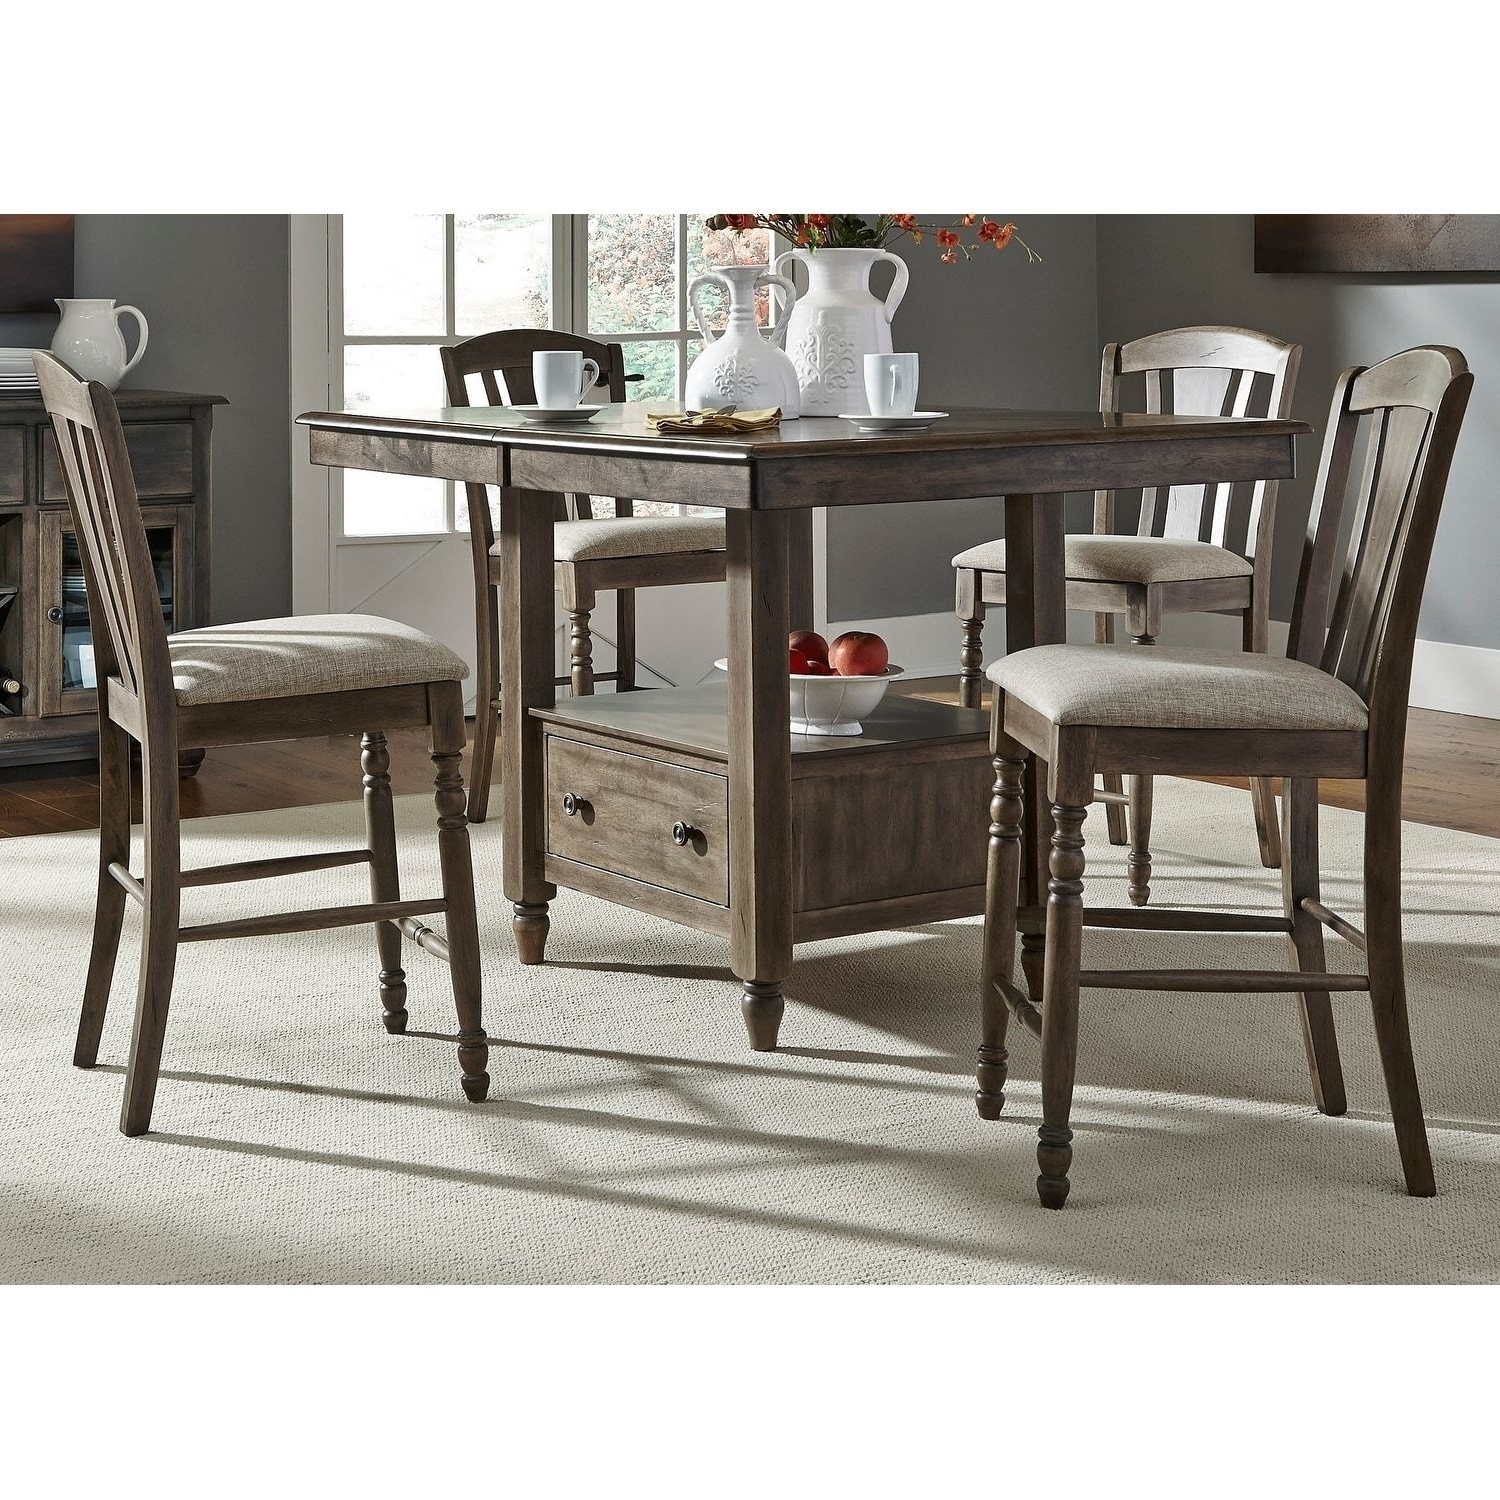 Well Liked Combs 5 Piece 48 Inch Extension Dining Sets With Mindy Side Chairs With Liberty Candlewood Weather Grey 7 Piece Slat Back Gathering Dinette (View 23 of 25)